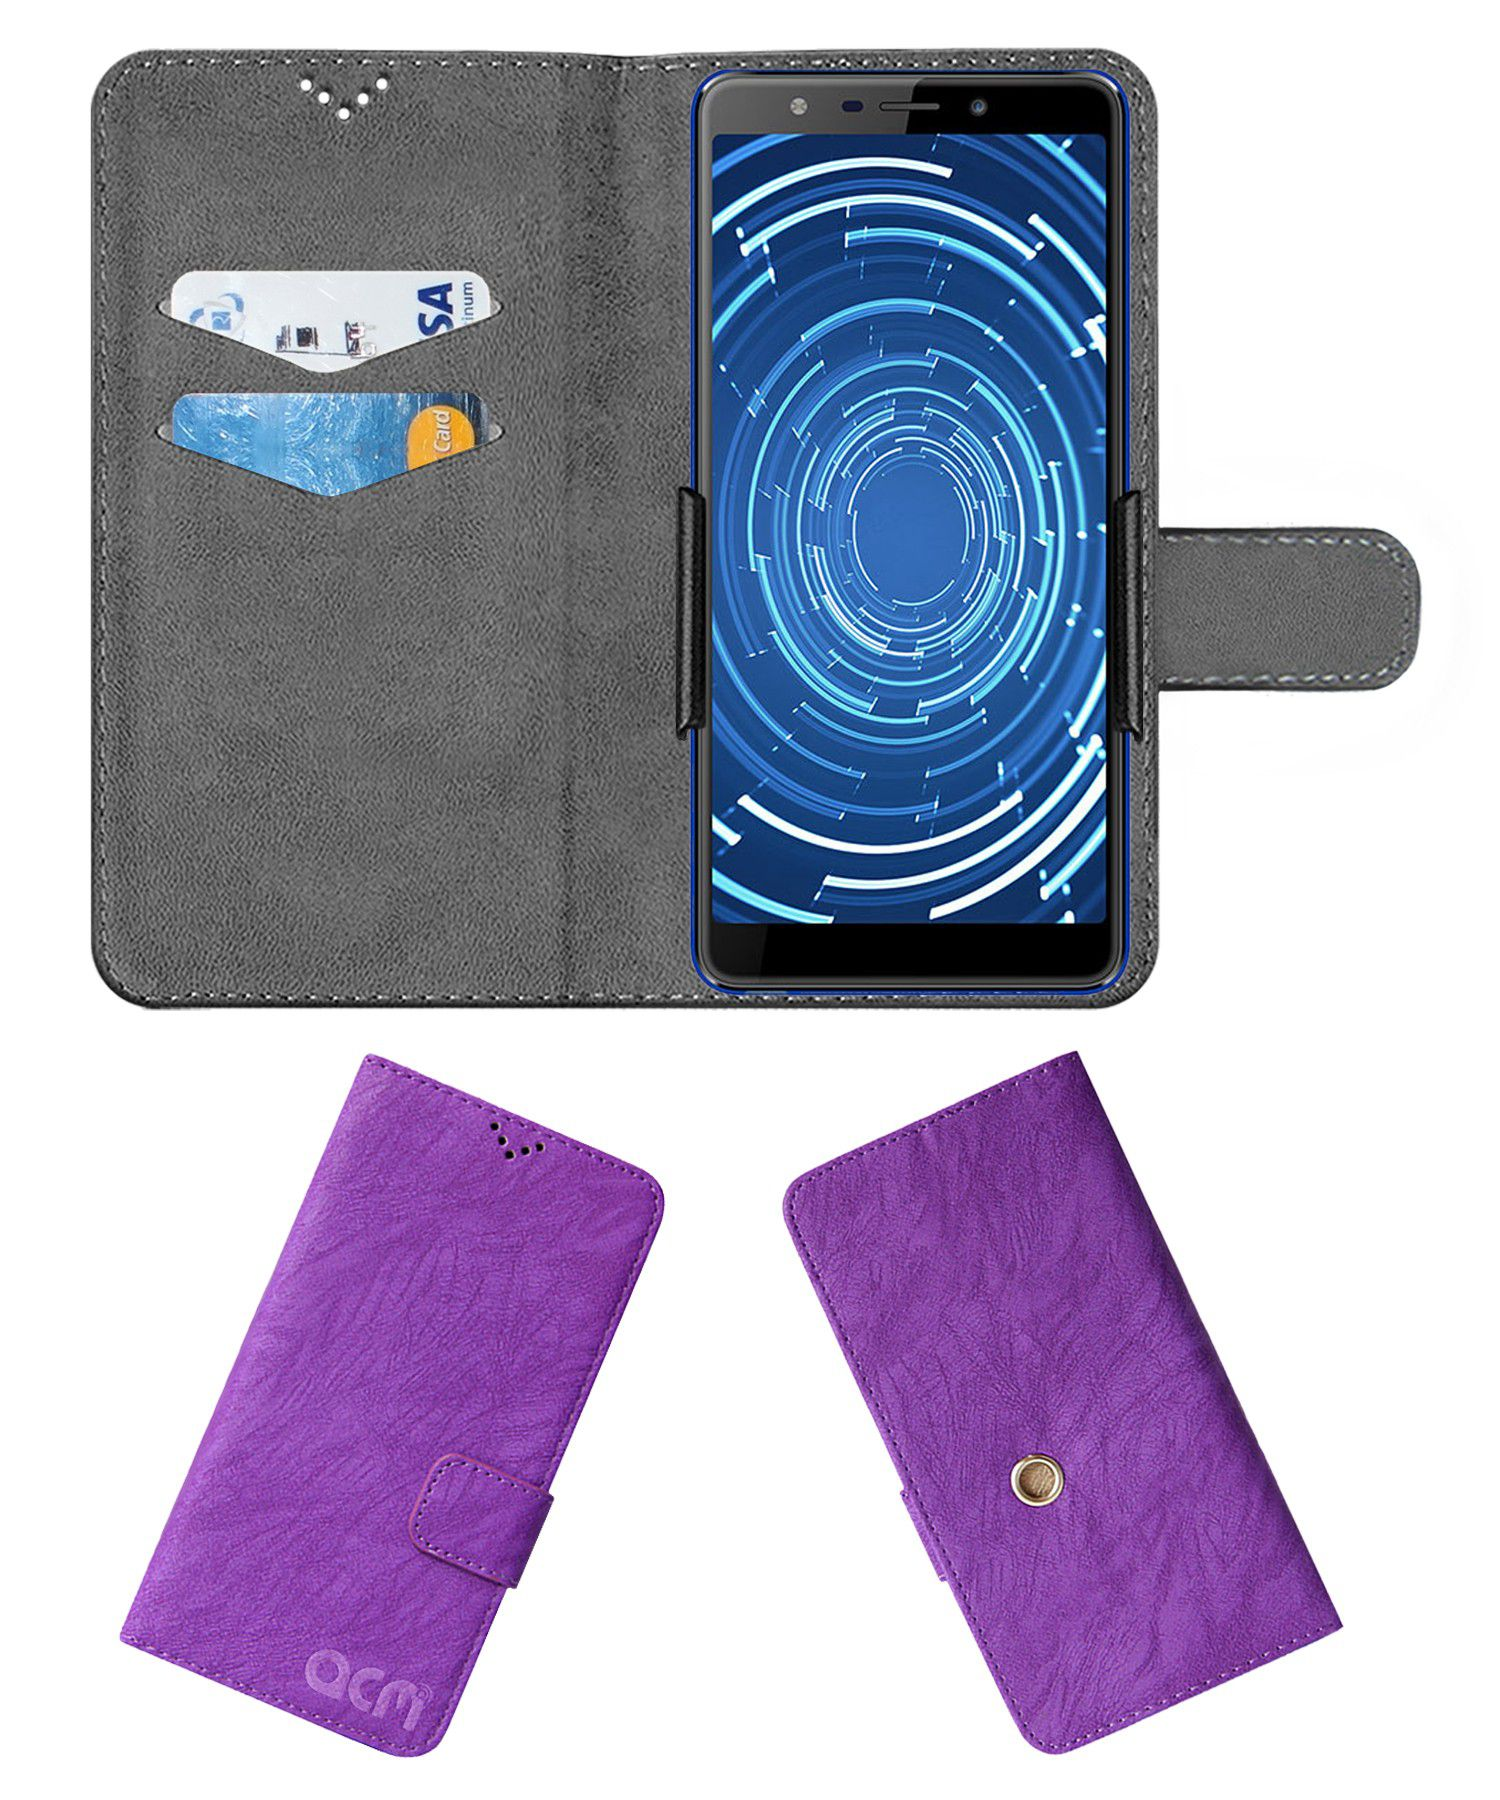 Panasonic Eluga Ray 530 Flip Cover by ACM - Purple Clip holder to hold your mobile securely